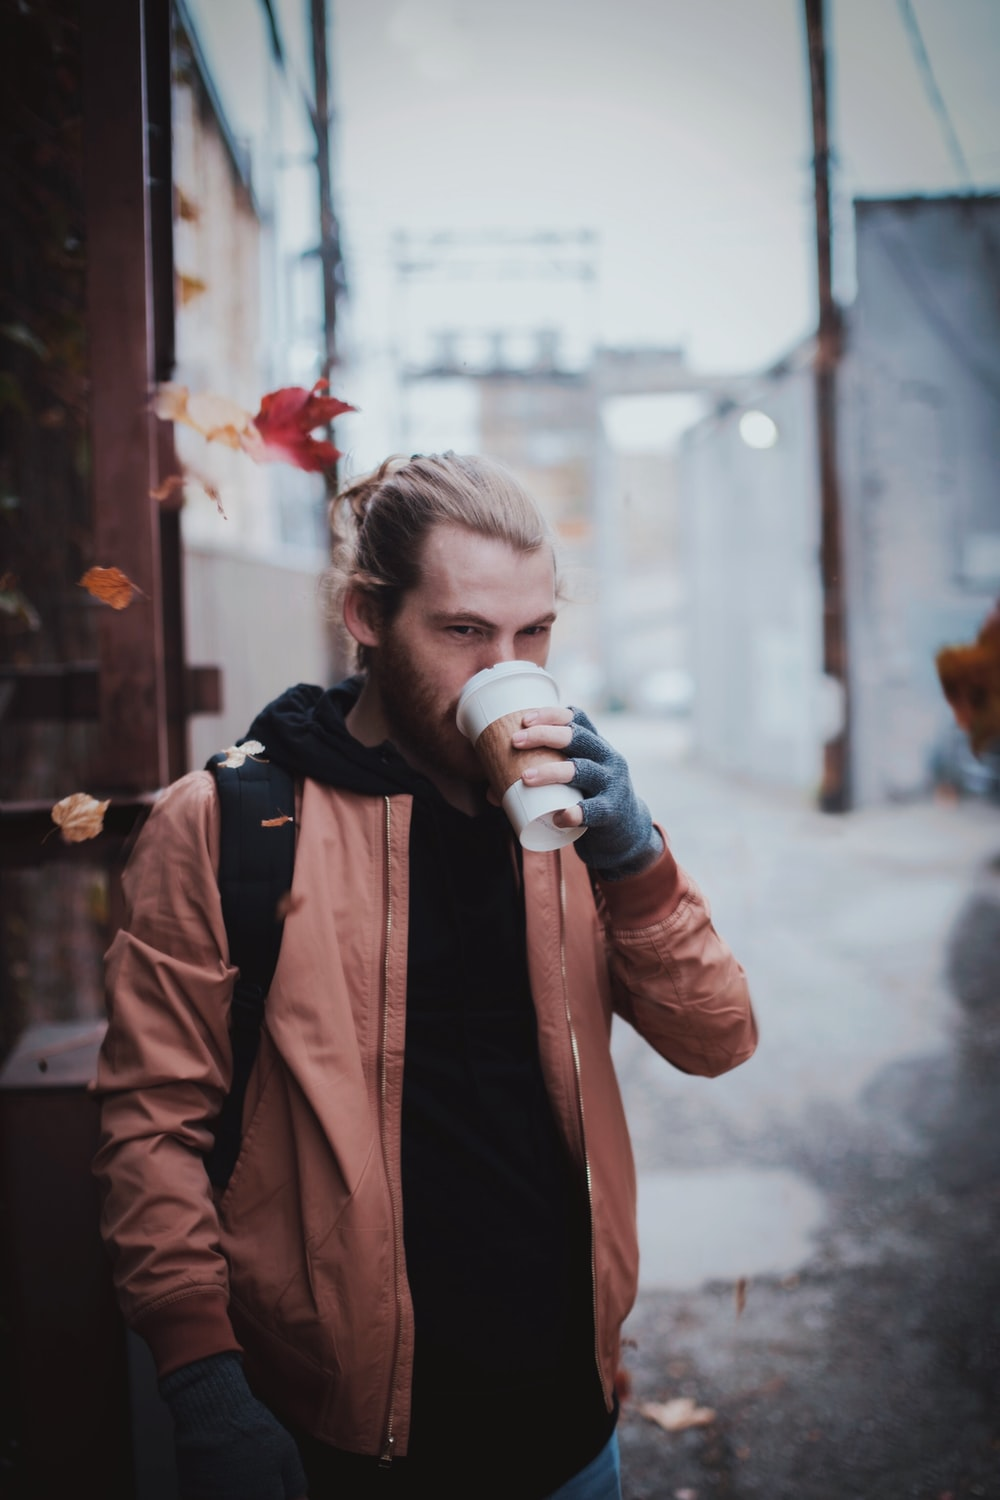 man drinking cup of coffee selective focus photography